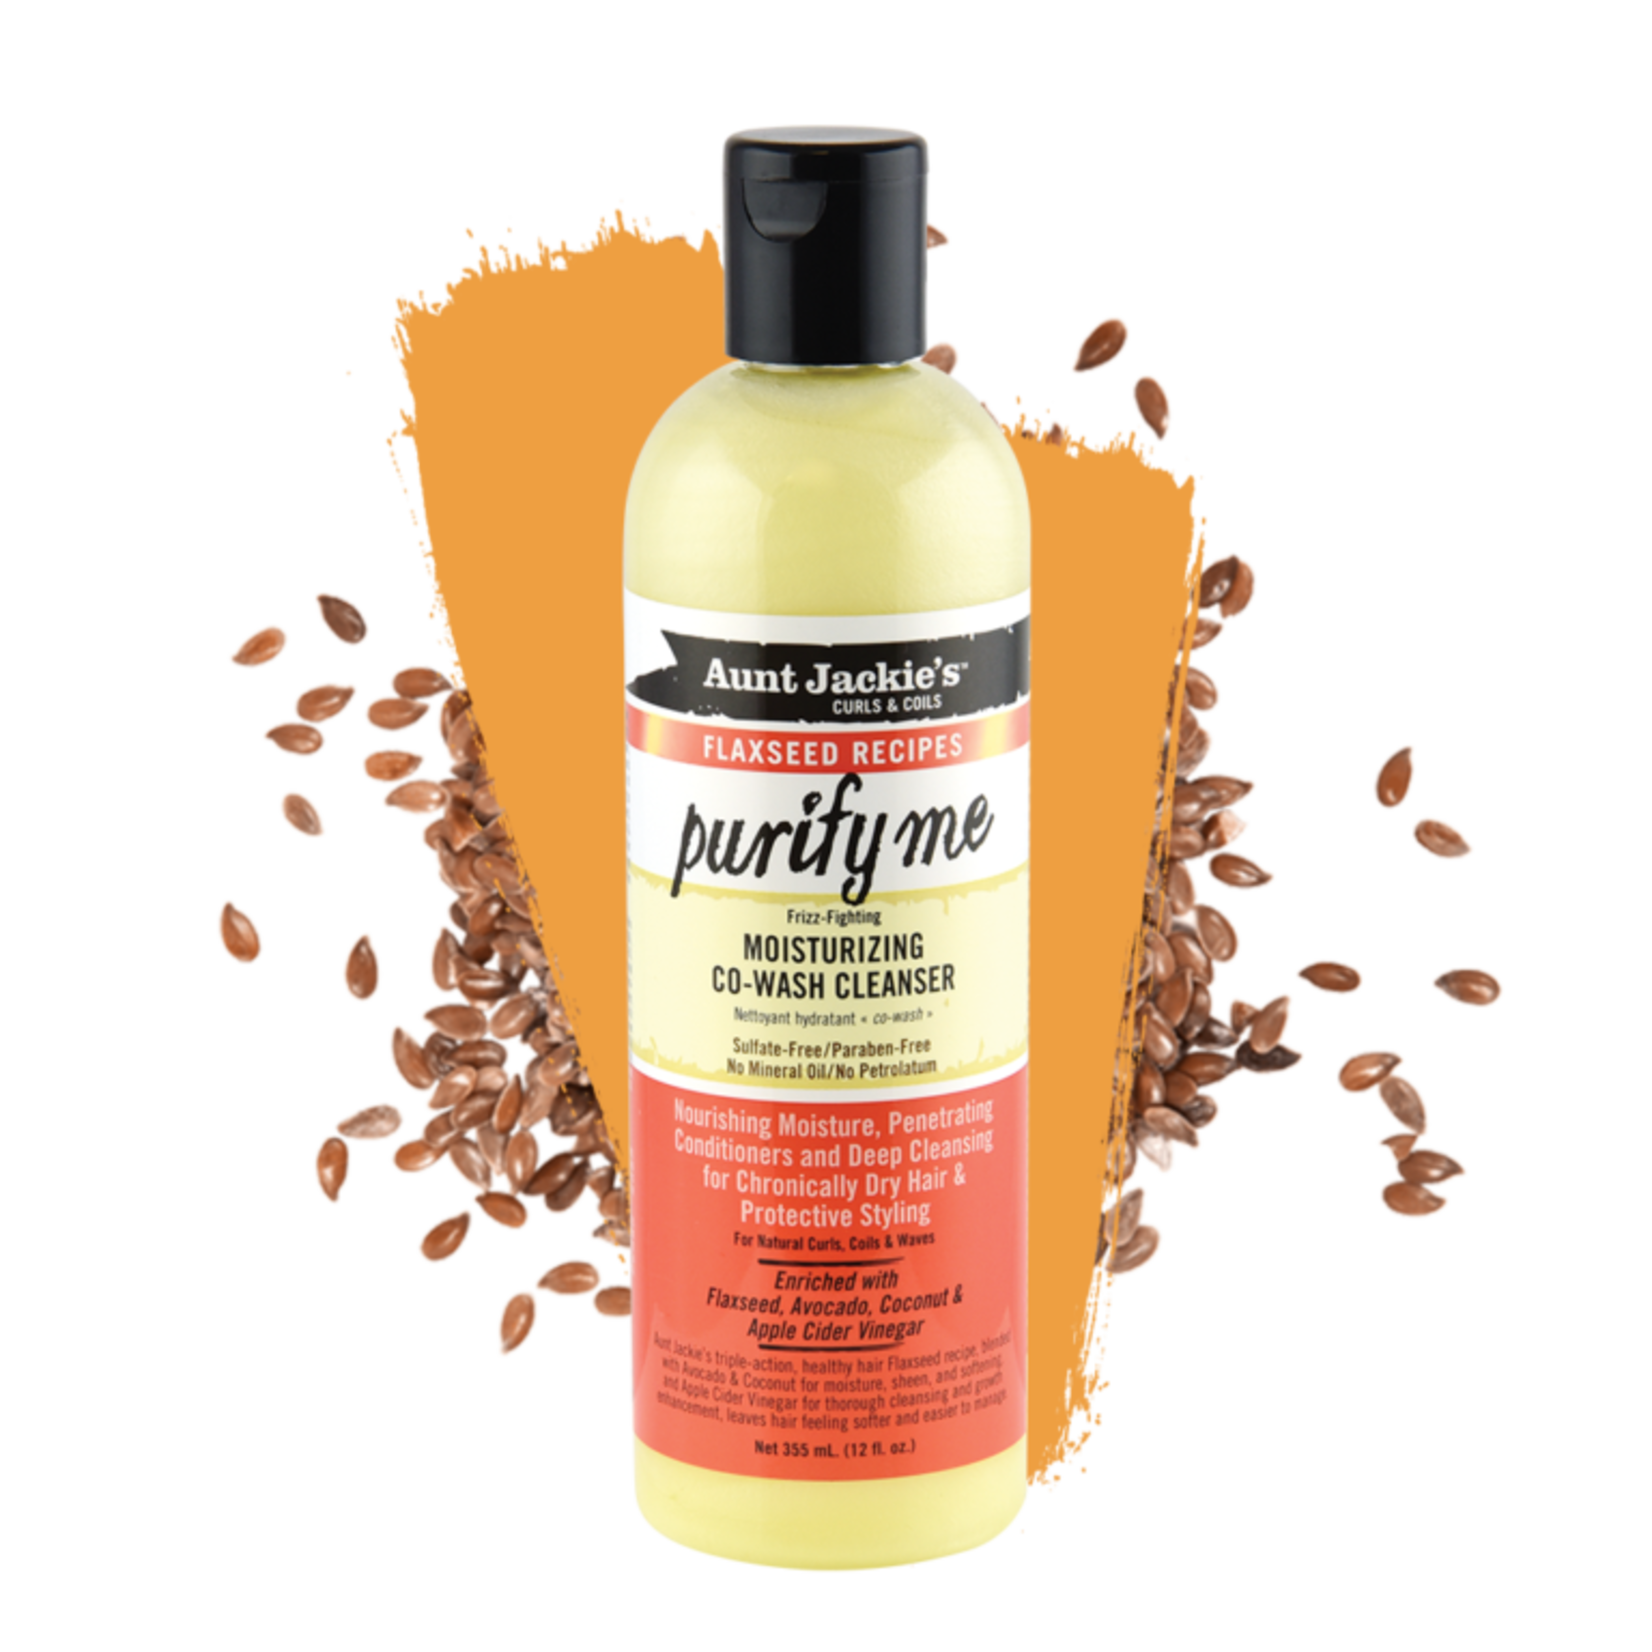 Aunt Jackie's Aunt Jackie's Flaxseed  Purify Me